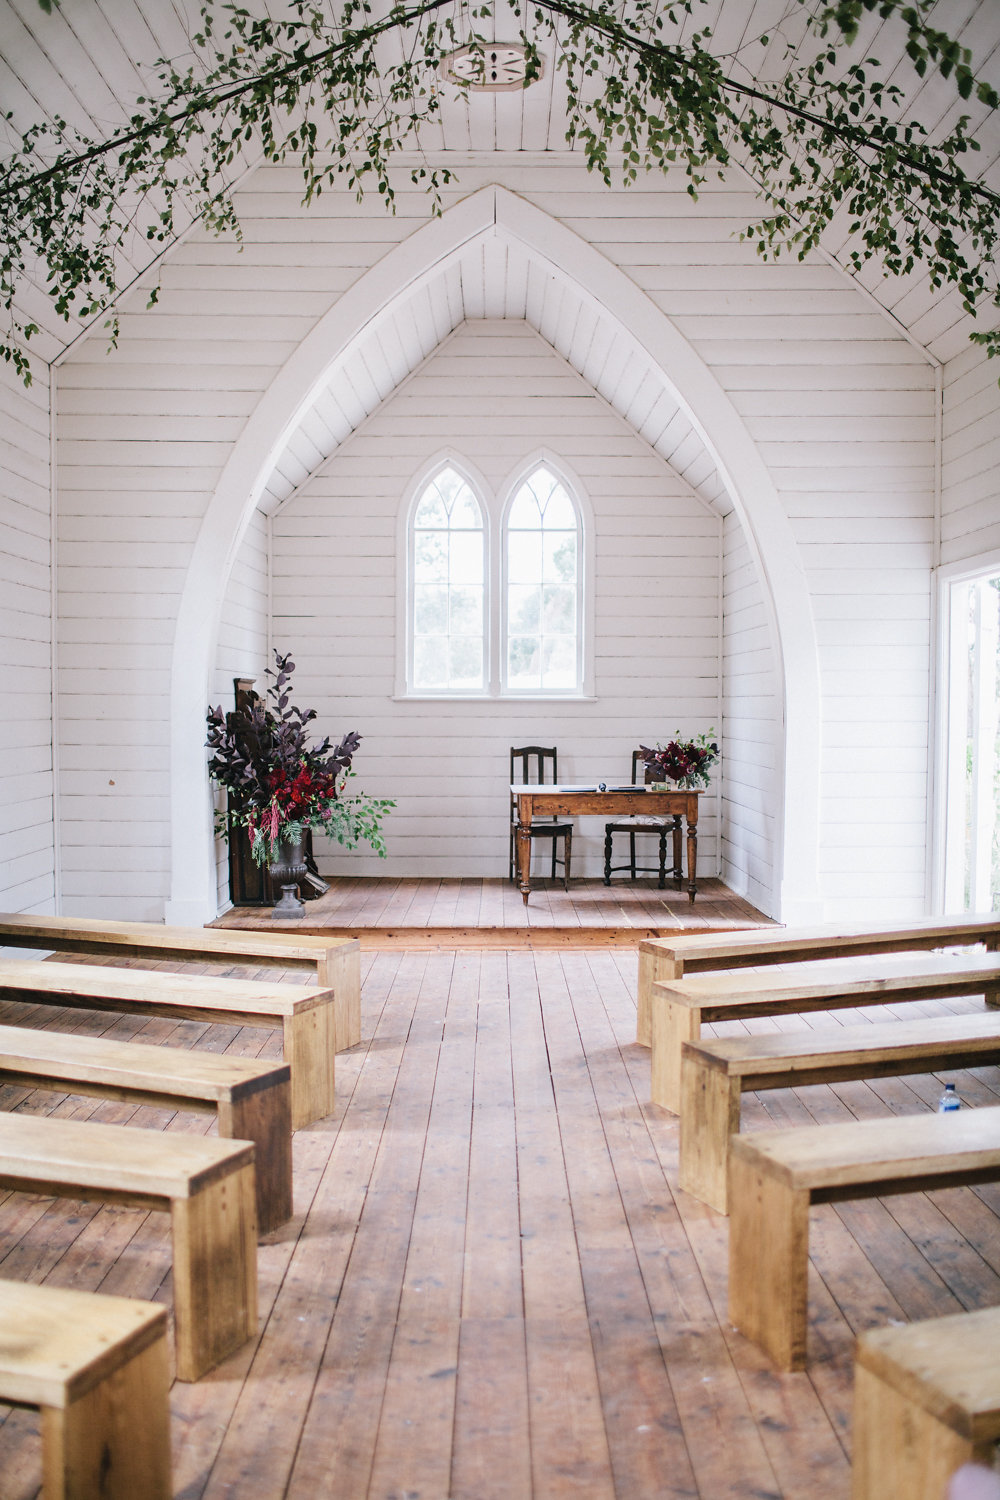 Florist Daylesford Wedding Event Little Church Springhill Country Wedding Flowers Styling